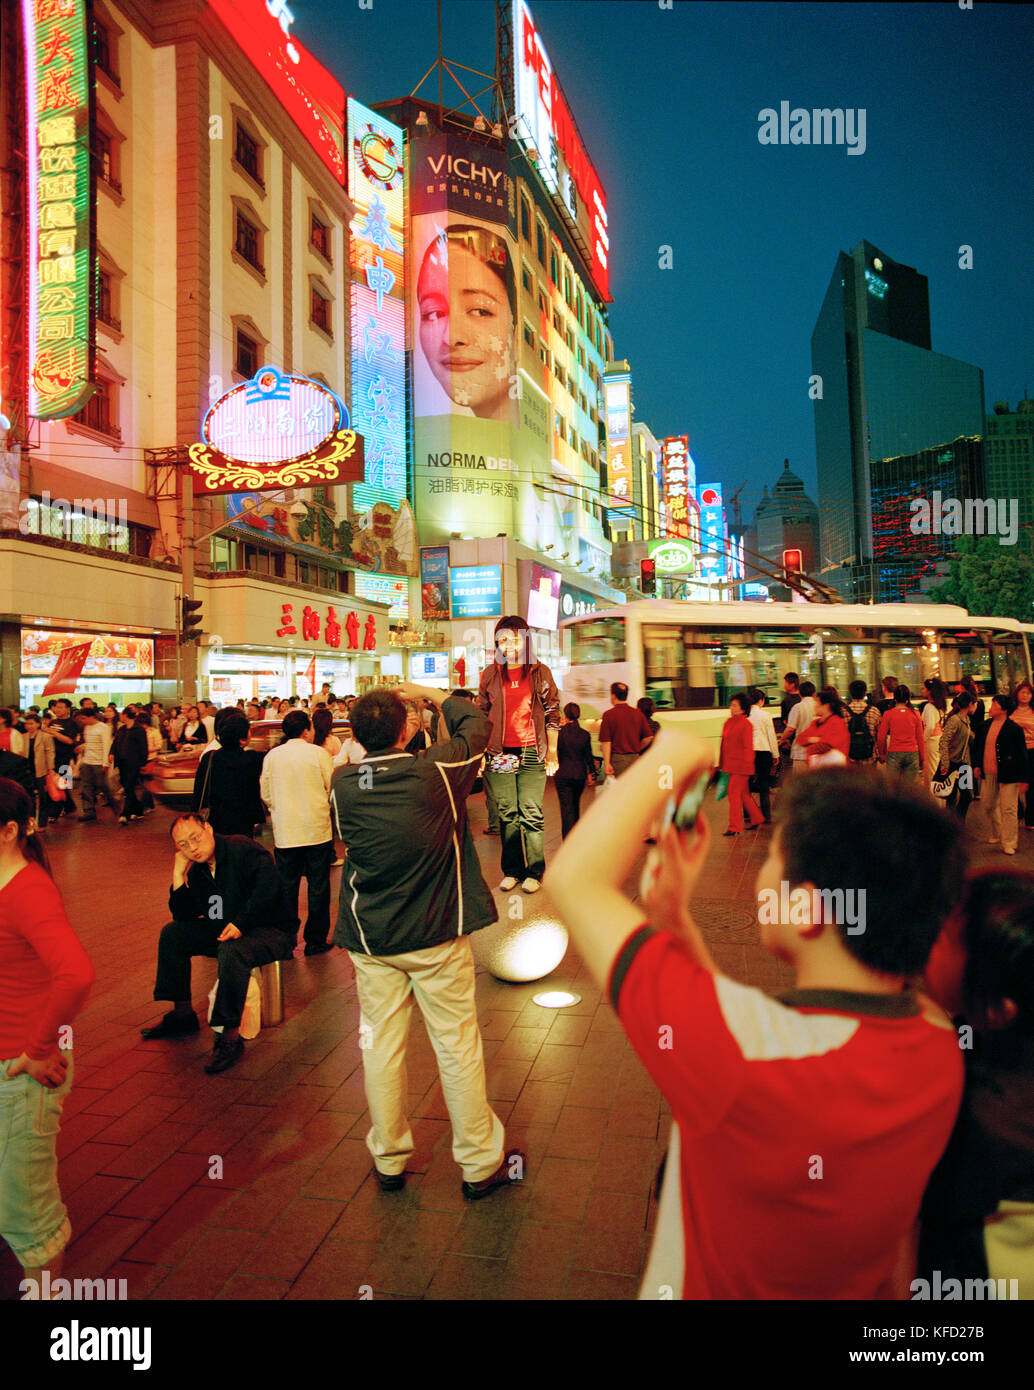 CHINA, Shanghai, people take photos of one another on a busy urban shopping street - Stock Image